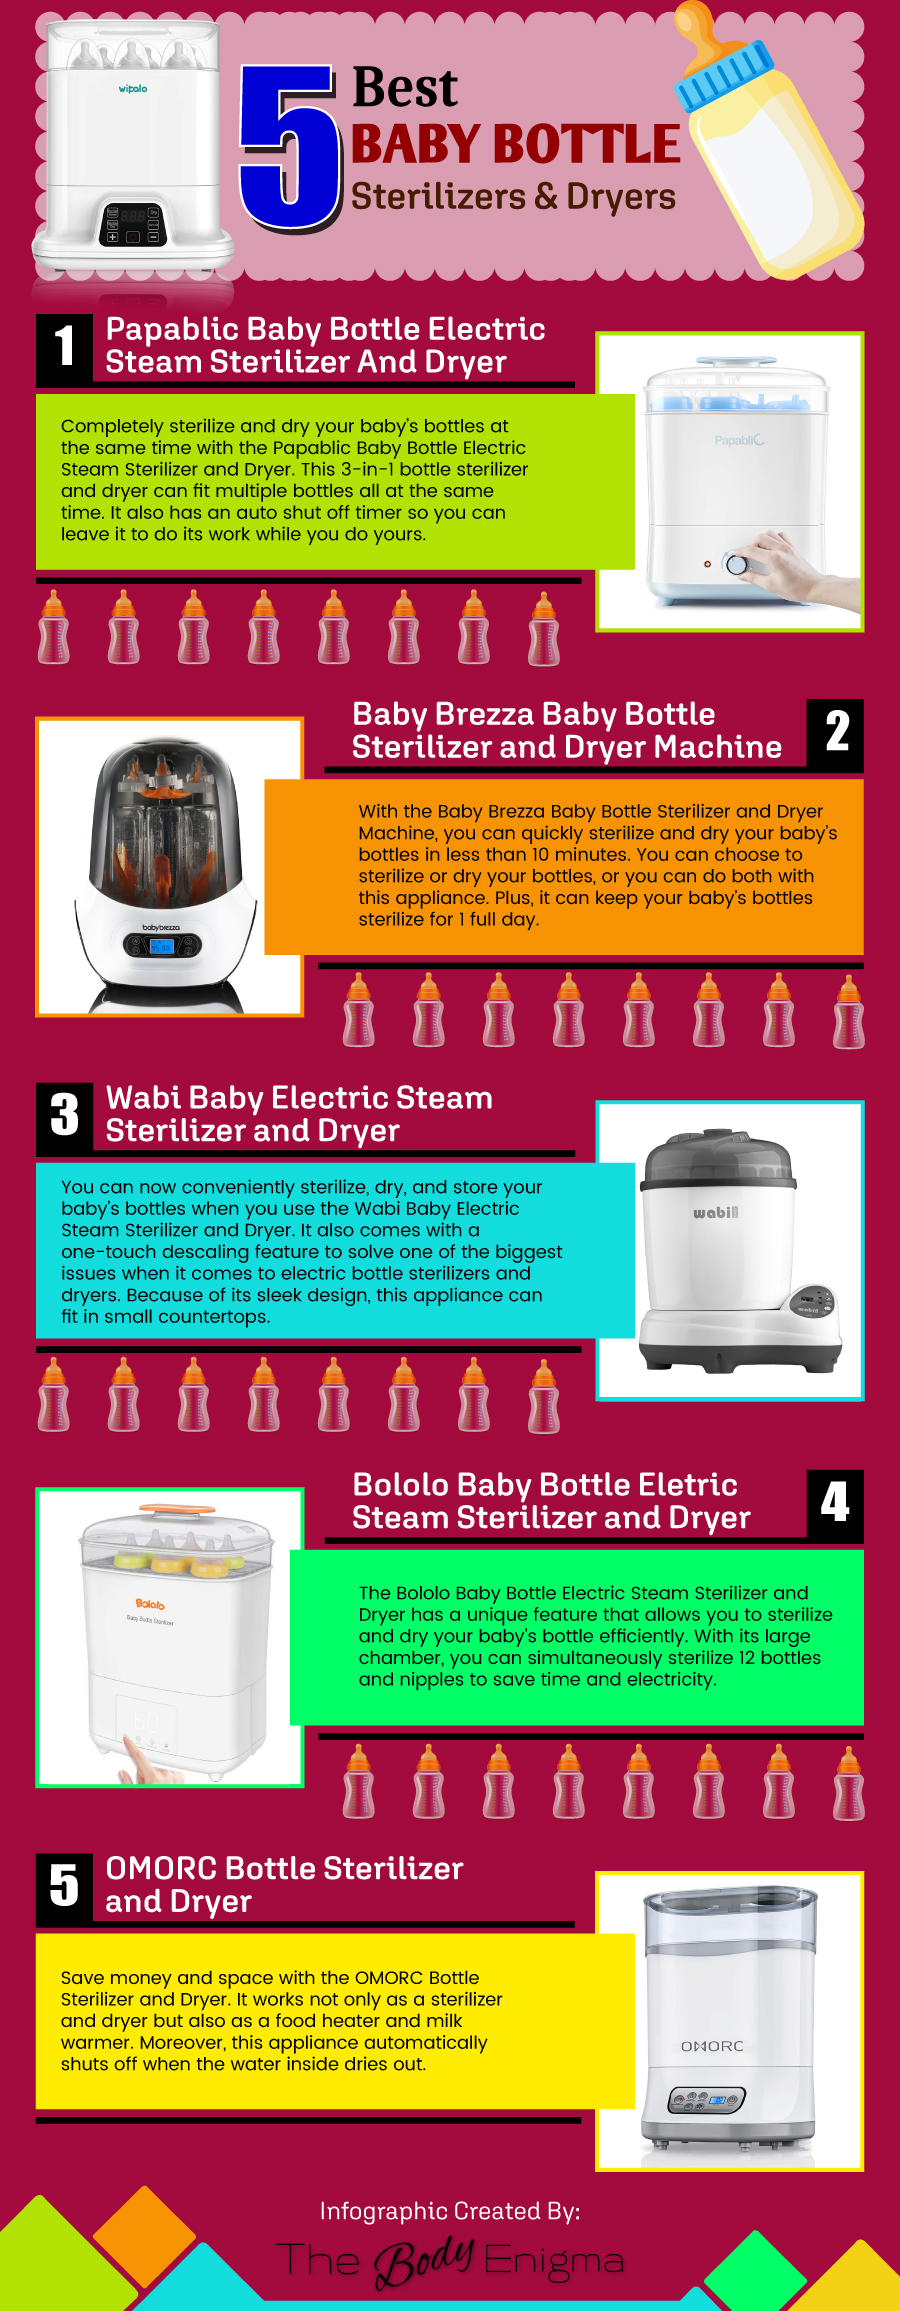 5 Best Baby Bottle Sterilizers & Dryers [Infographic]